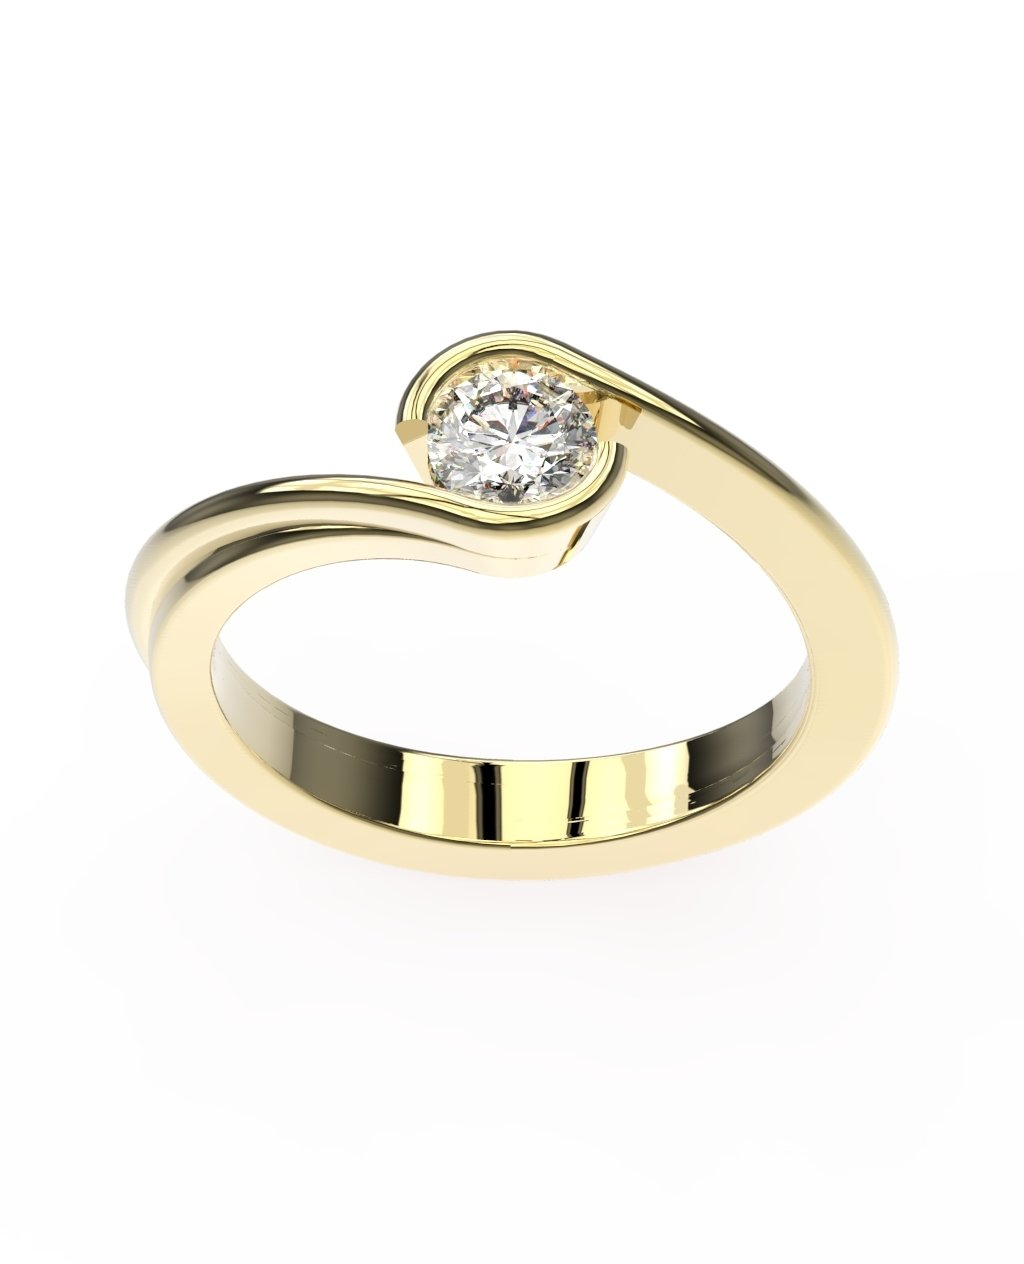 18ct Yelow Gold Tension Ring